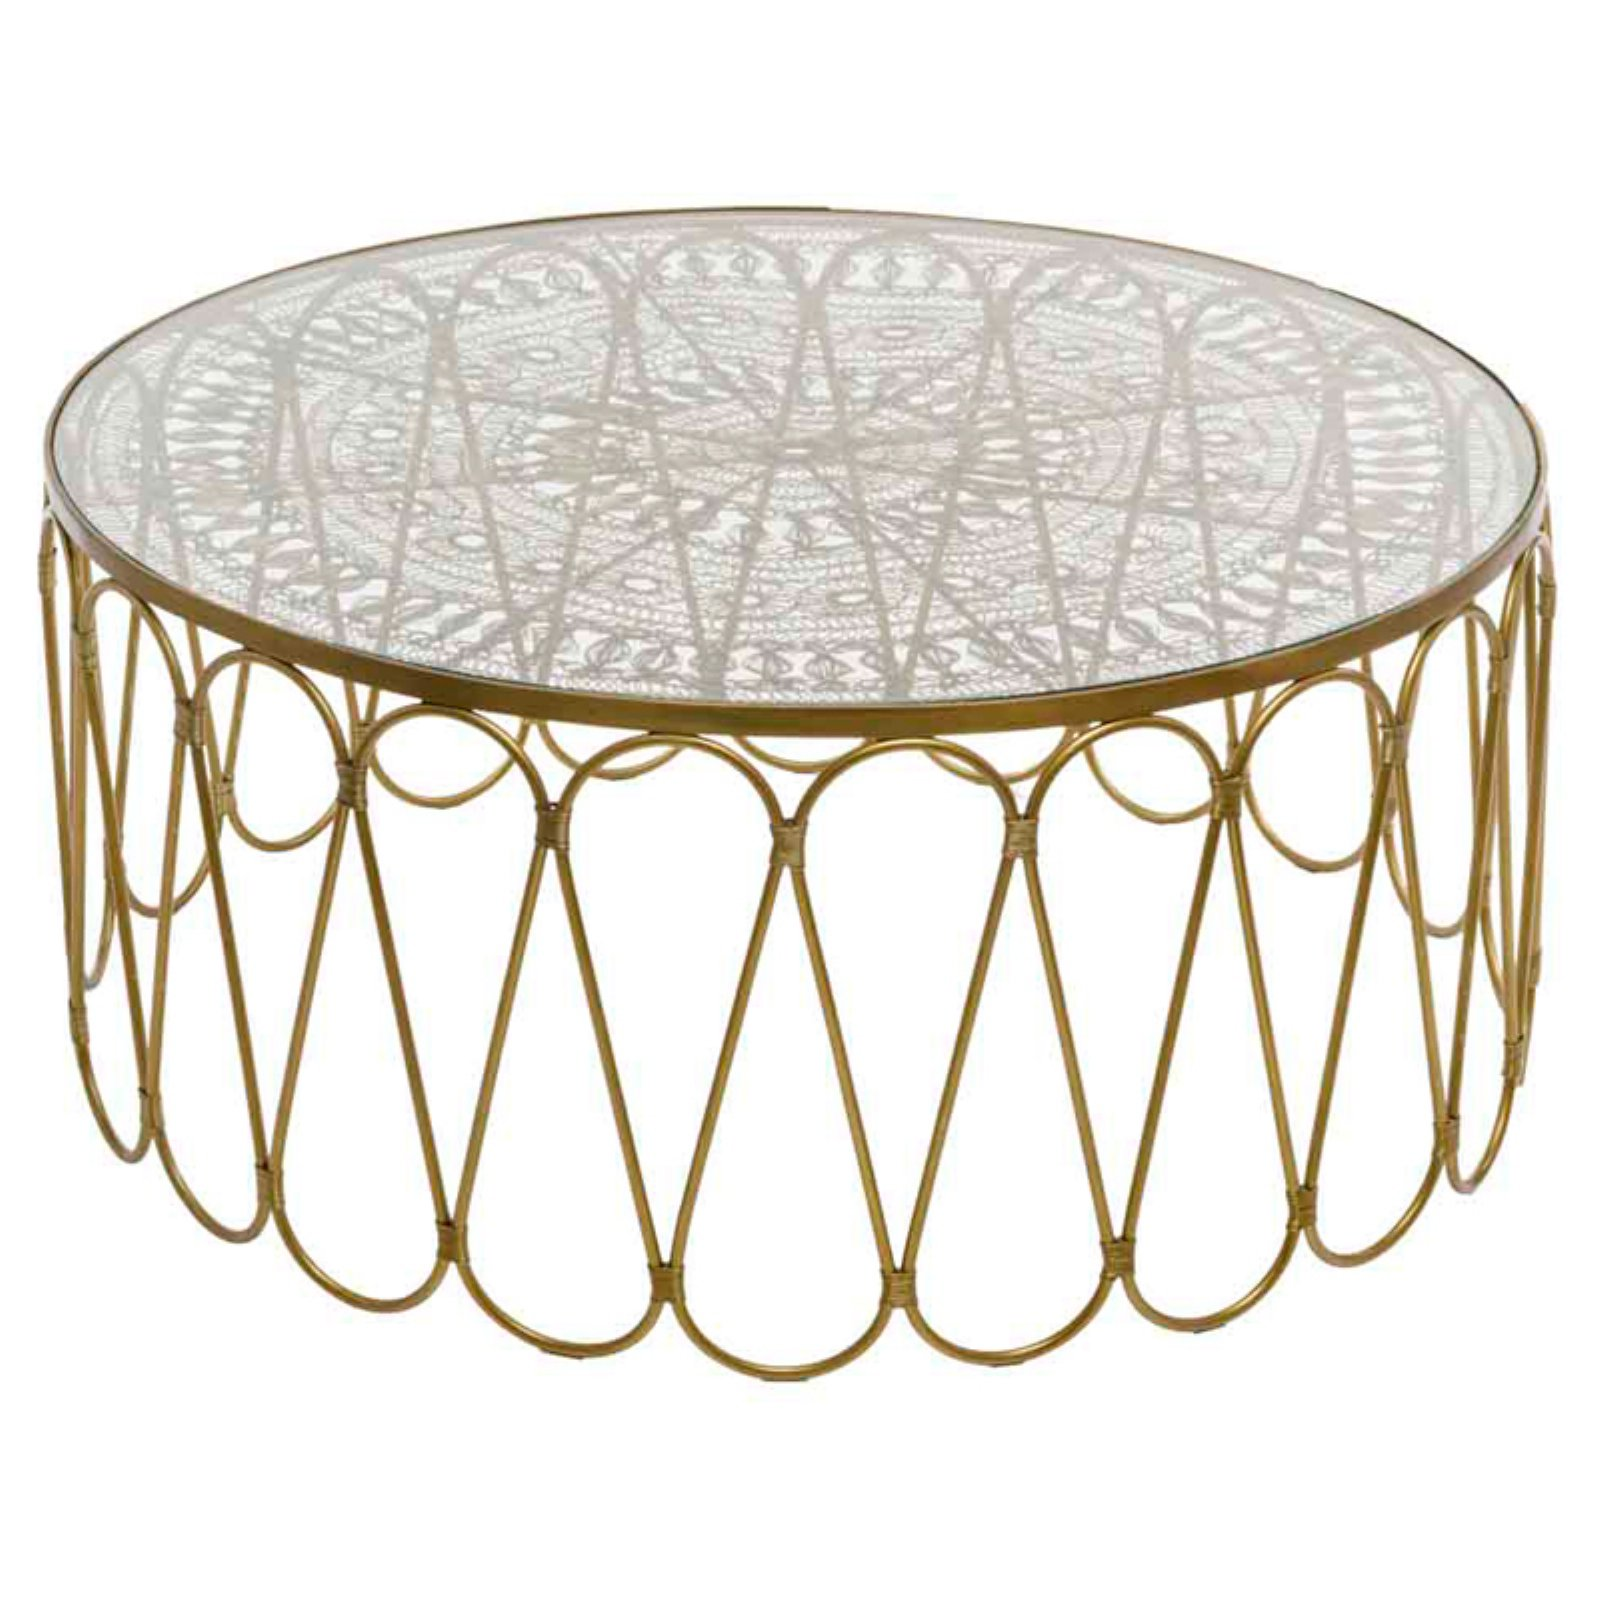 Modern Day Accents Alambre Wire Work Coffee Table